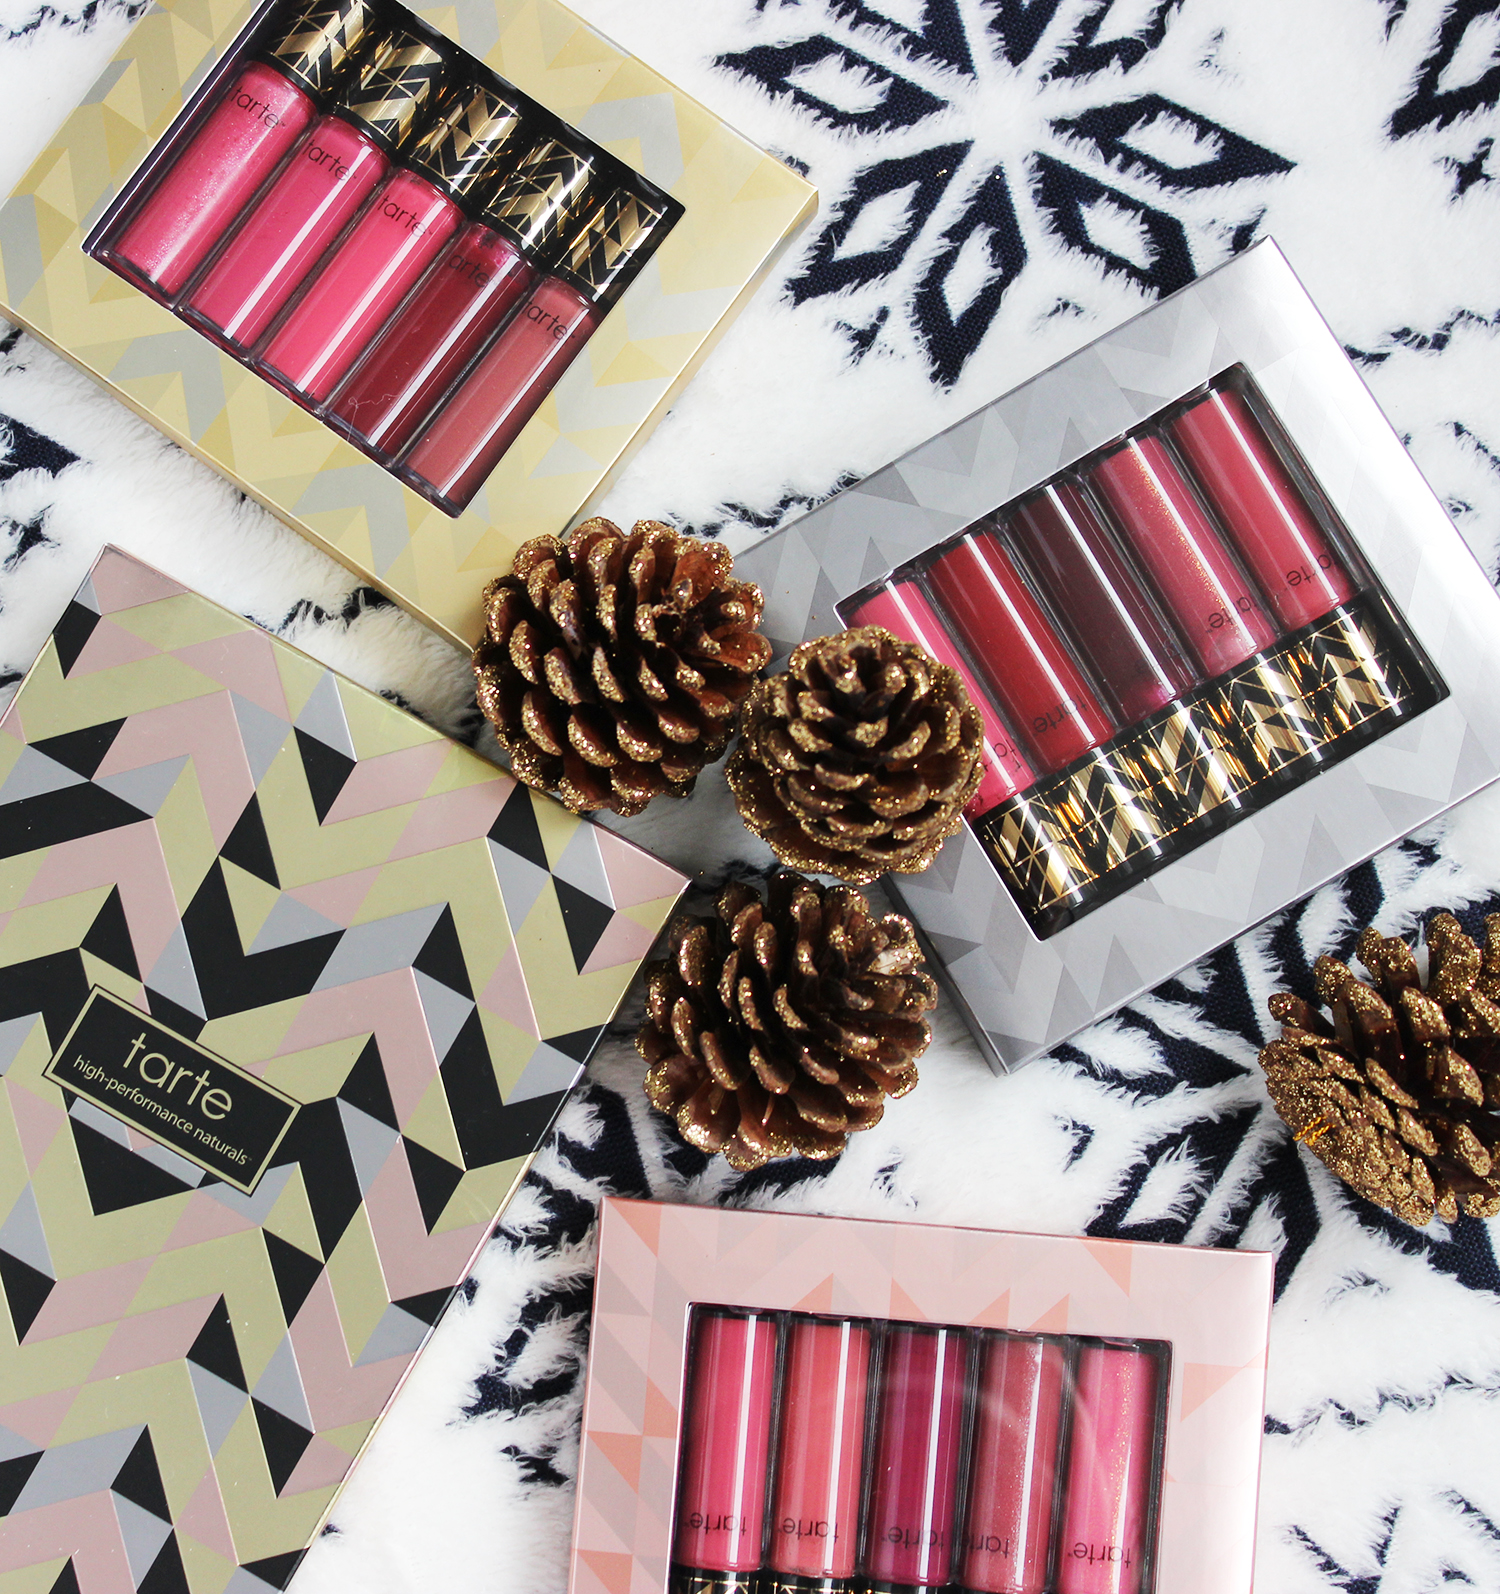 Christmas gift guide - luxury beauty gifts for her